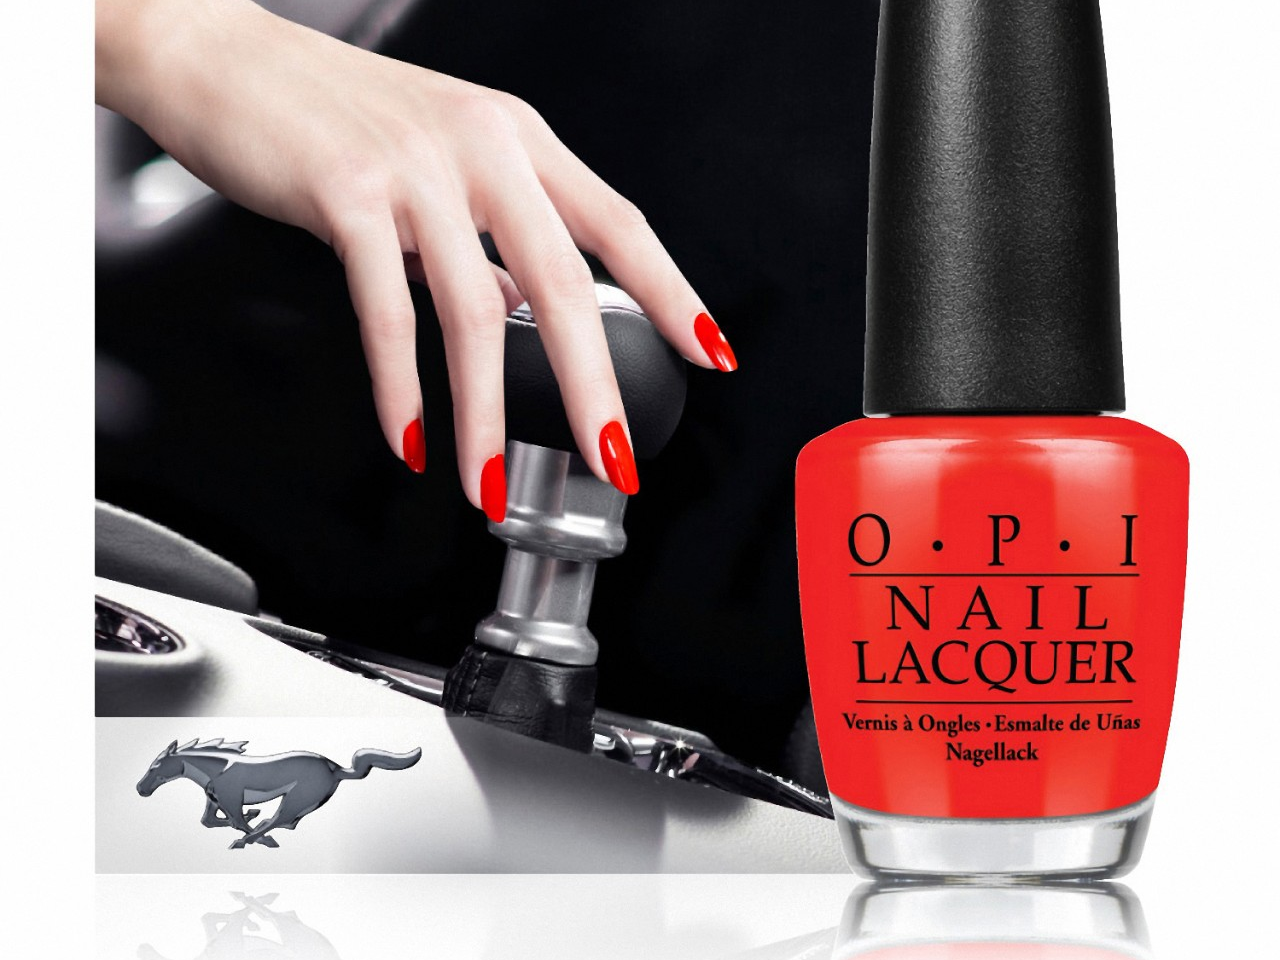 OPI Nail Lacquer & Ford Team Up for a Mustang-Inspired Line